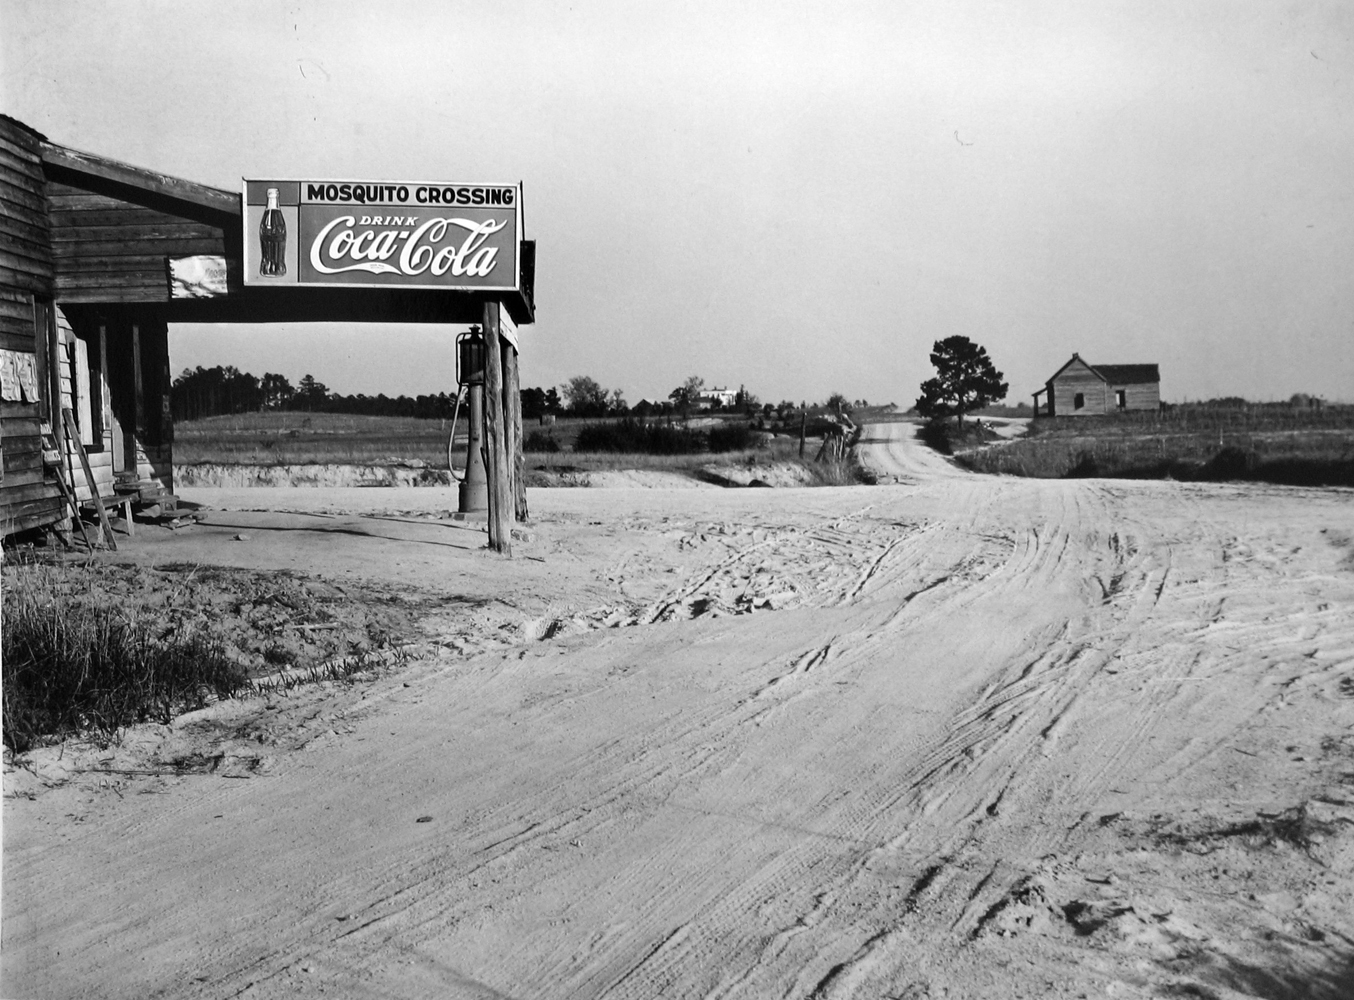 Marion Post Wolcott, Mosquito Crossing, GA, 1939, gelatin silver print, 11 x 14 inches